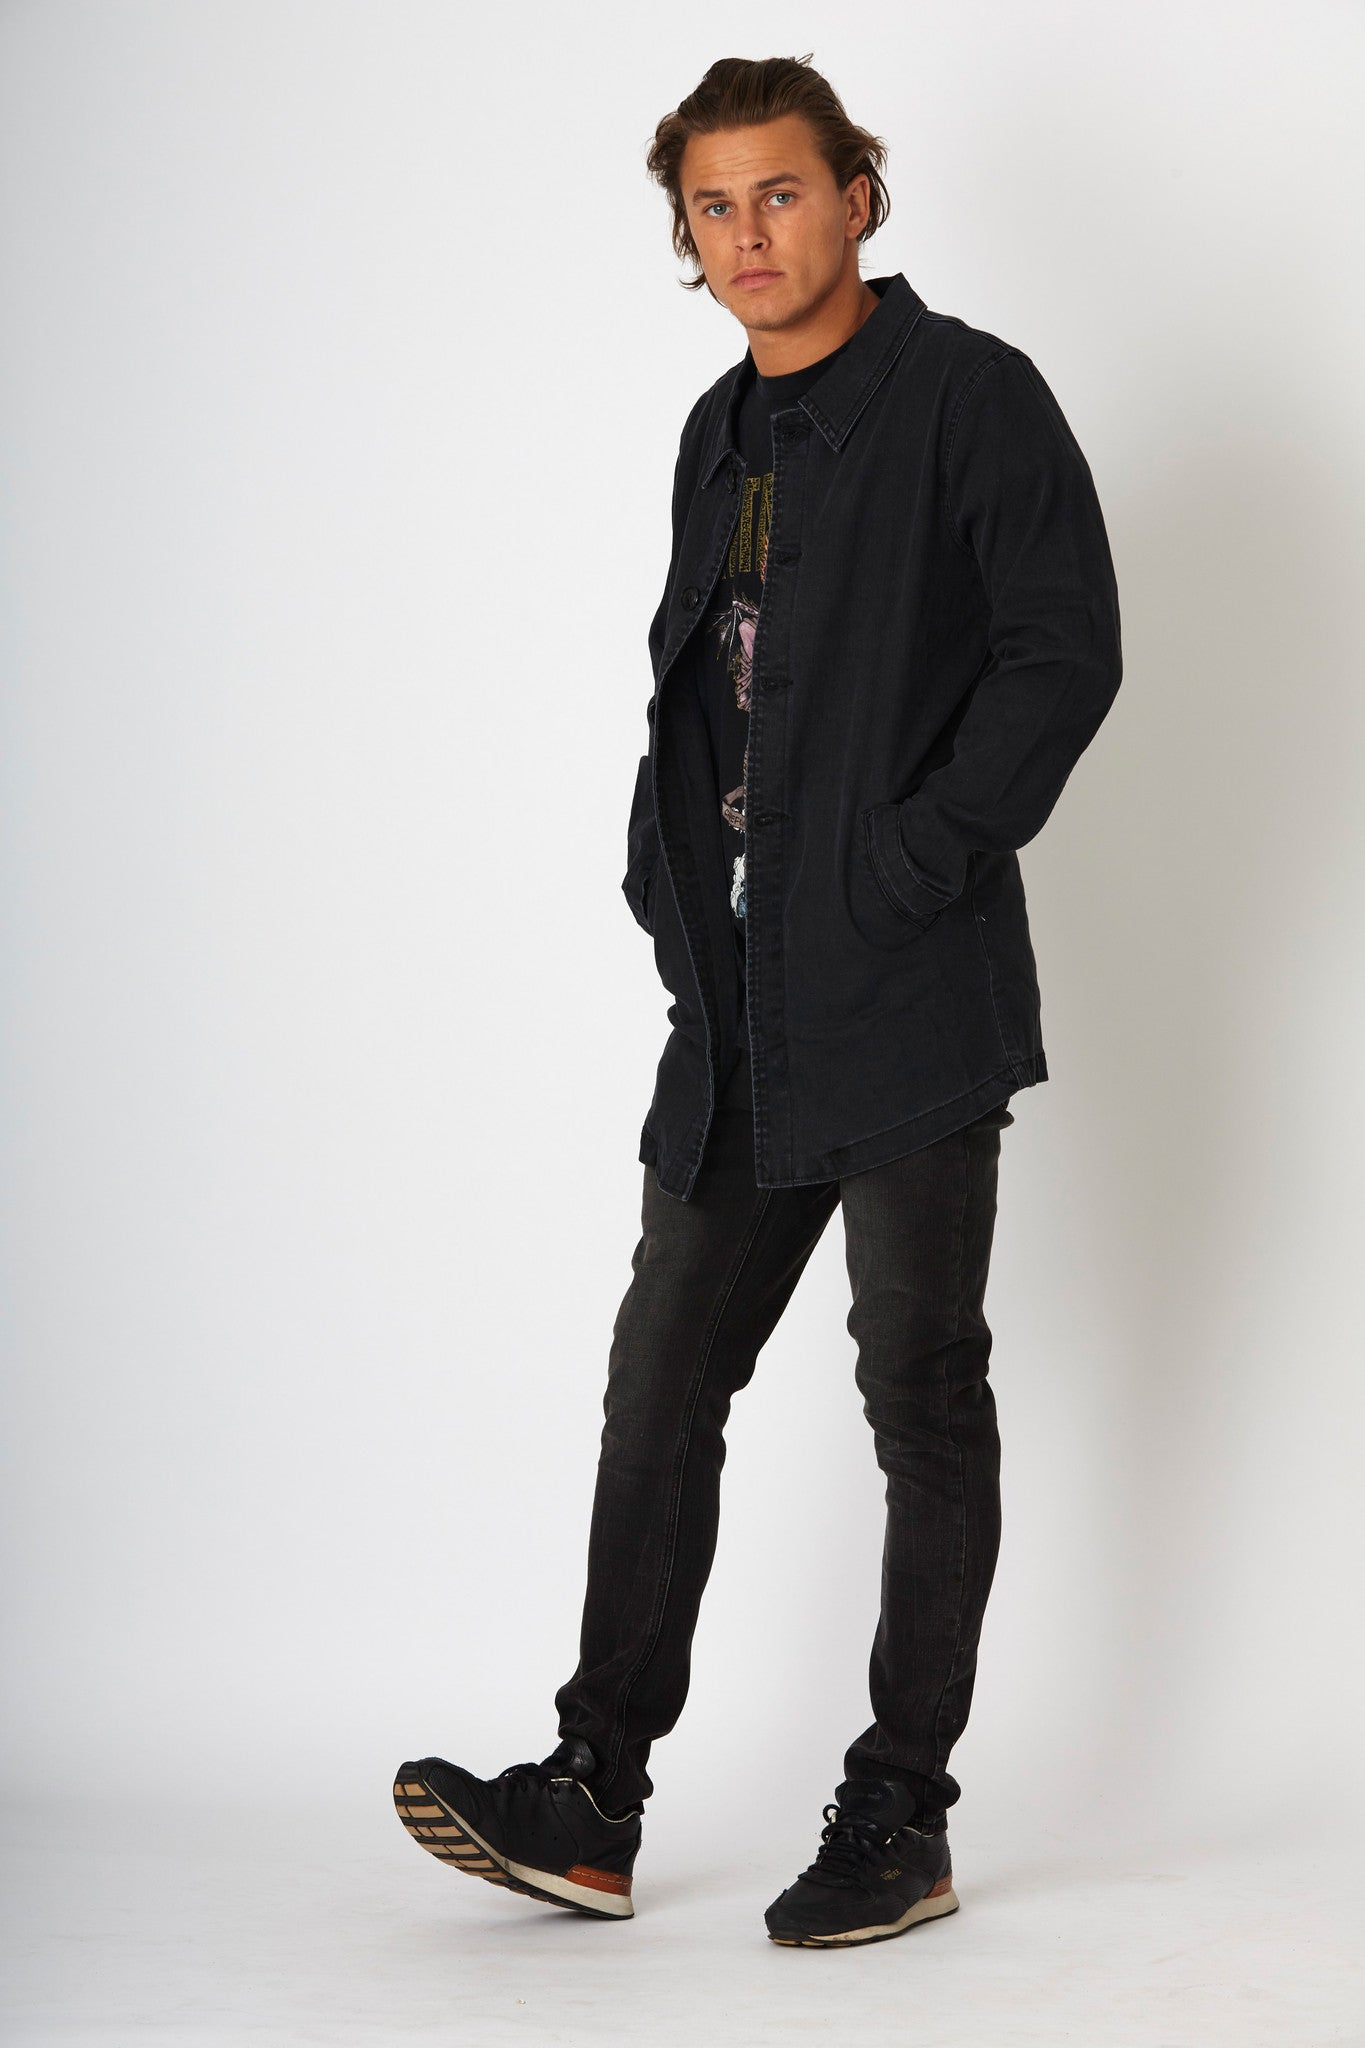 #2G19 Slim Jacket Orbit Black - denimcolab